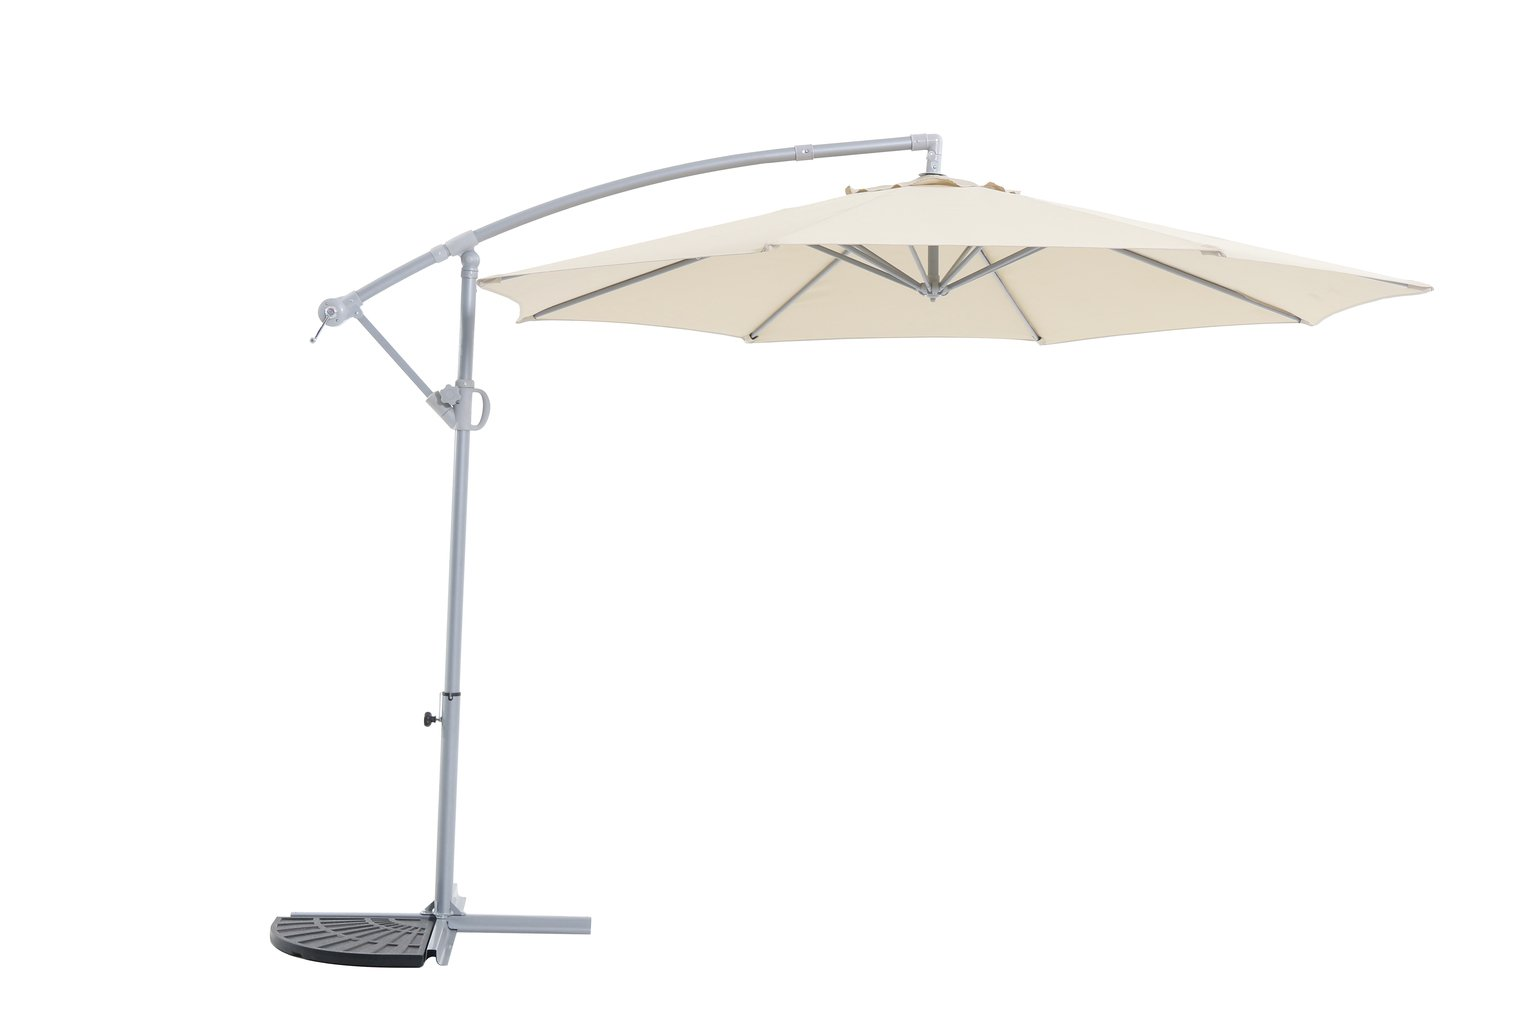 Buy Argos Home Rotating Overhanging Garden Parasol Cream Garden Parasols And Bases Argos - Garden Furniture Clearance Argos